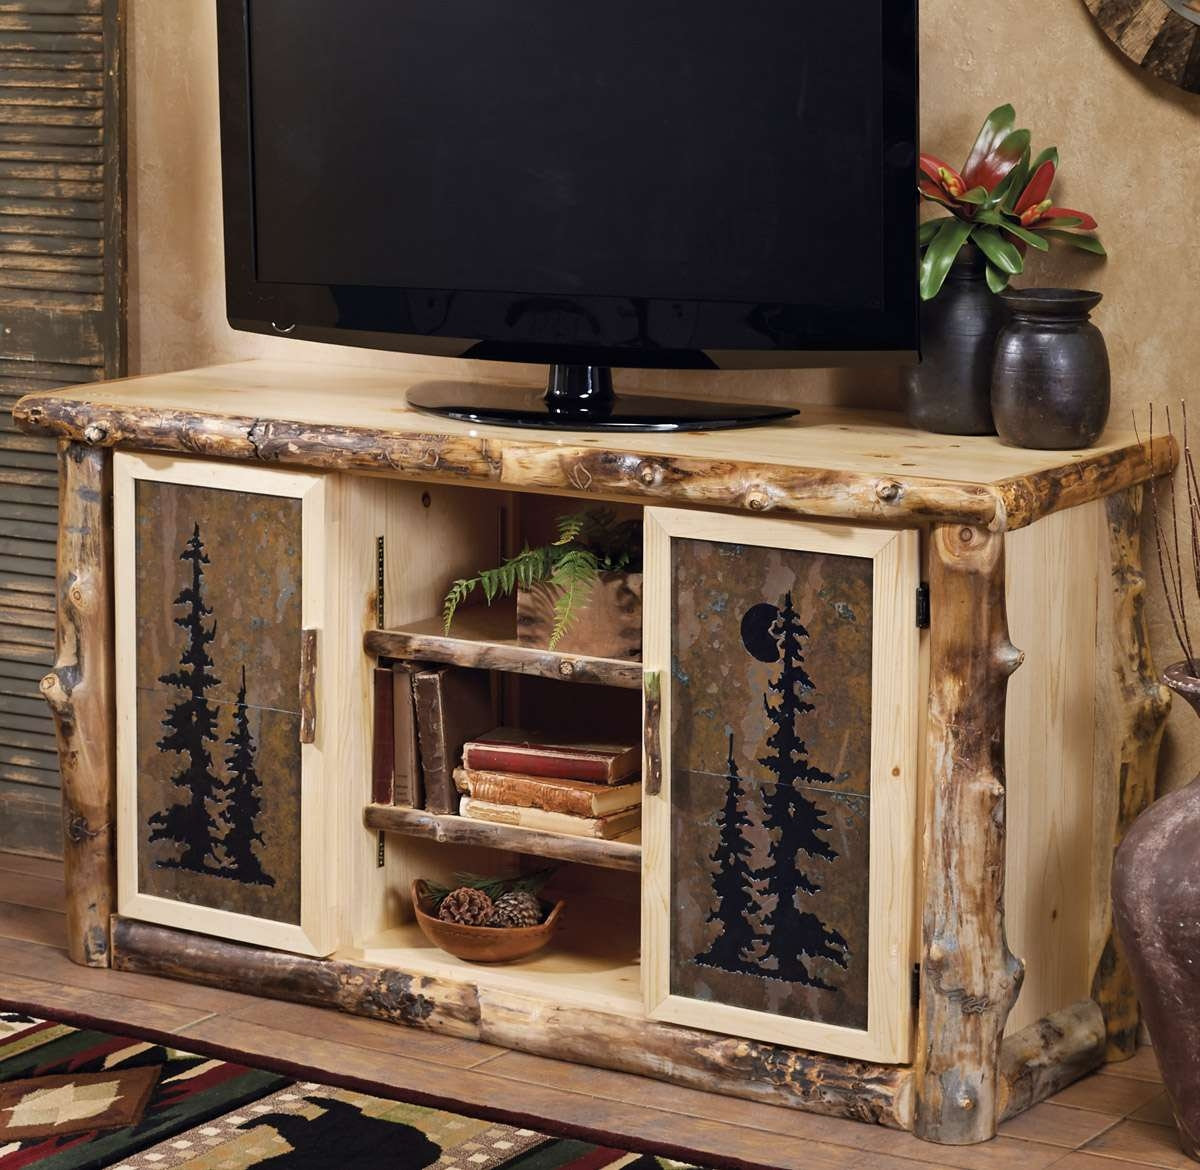 Surprising Inspiration Rustic Tv Cabinet Simple Decoration Rustic With Rustic Pine Tv Cabinets (View 16 of 20)